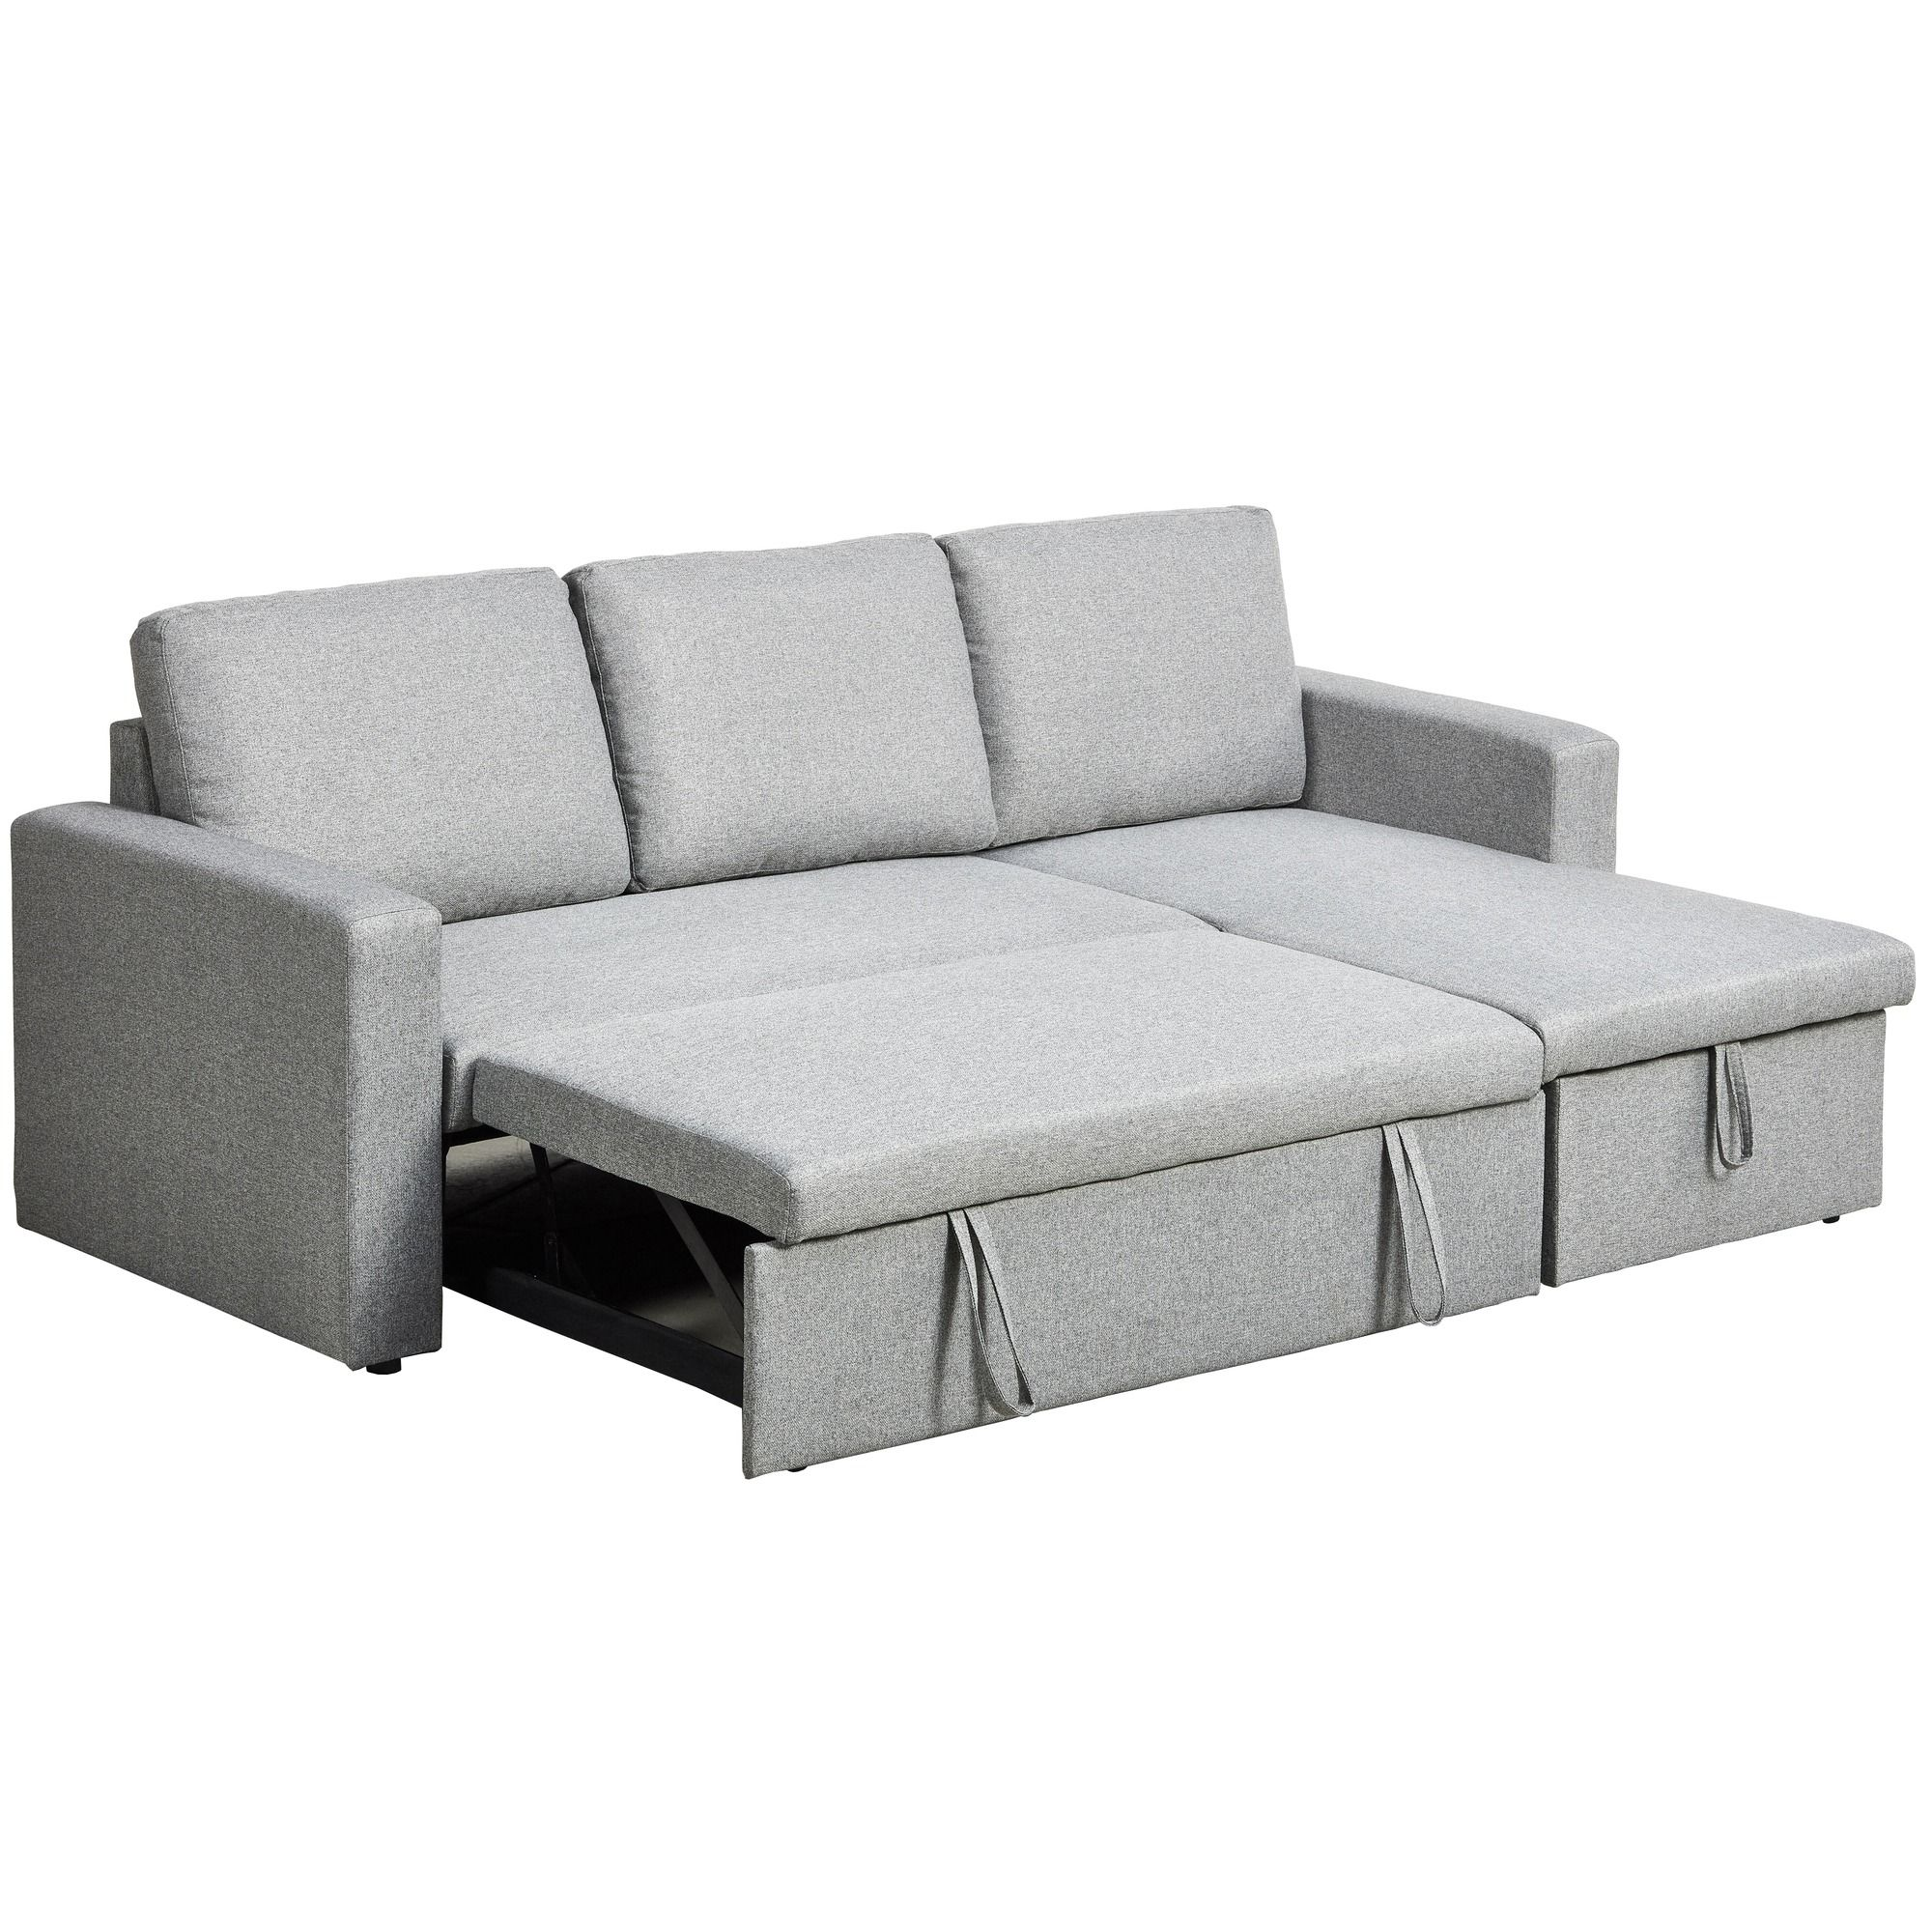 Perfect For Unexpected Guests The Sofa Transforms Into A Double Bed With Hidden Storage For Bedding And Cushions The Sleek Design An Chaise Sofa Sofa Sofa Bed